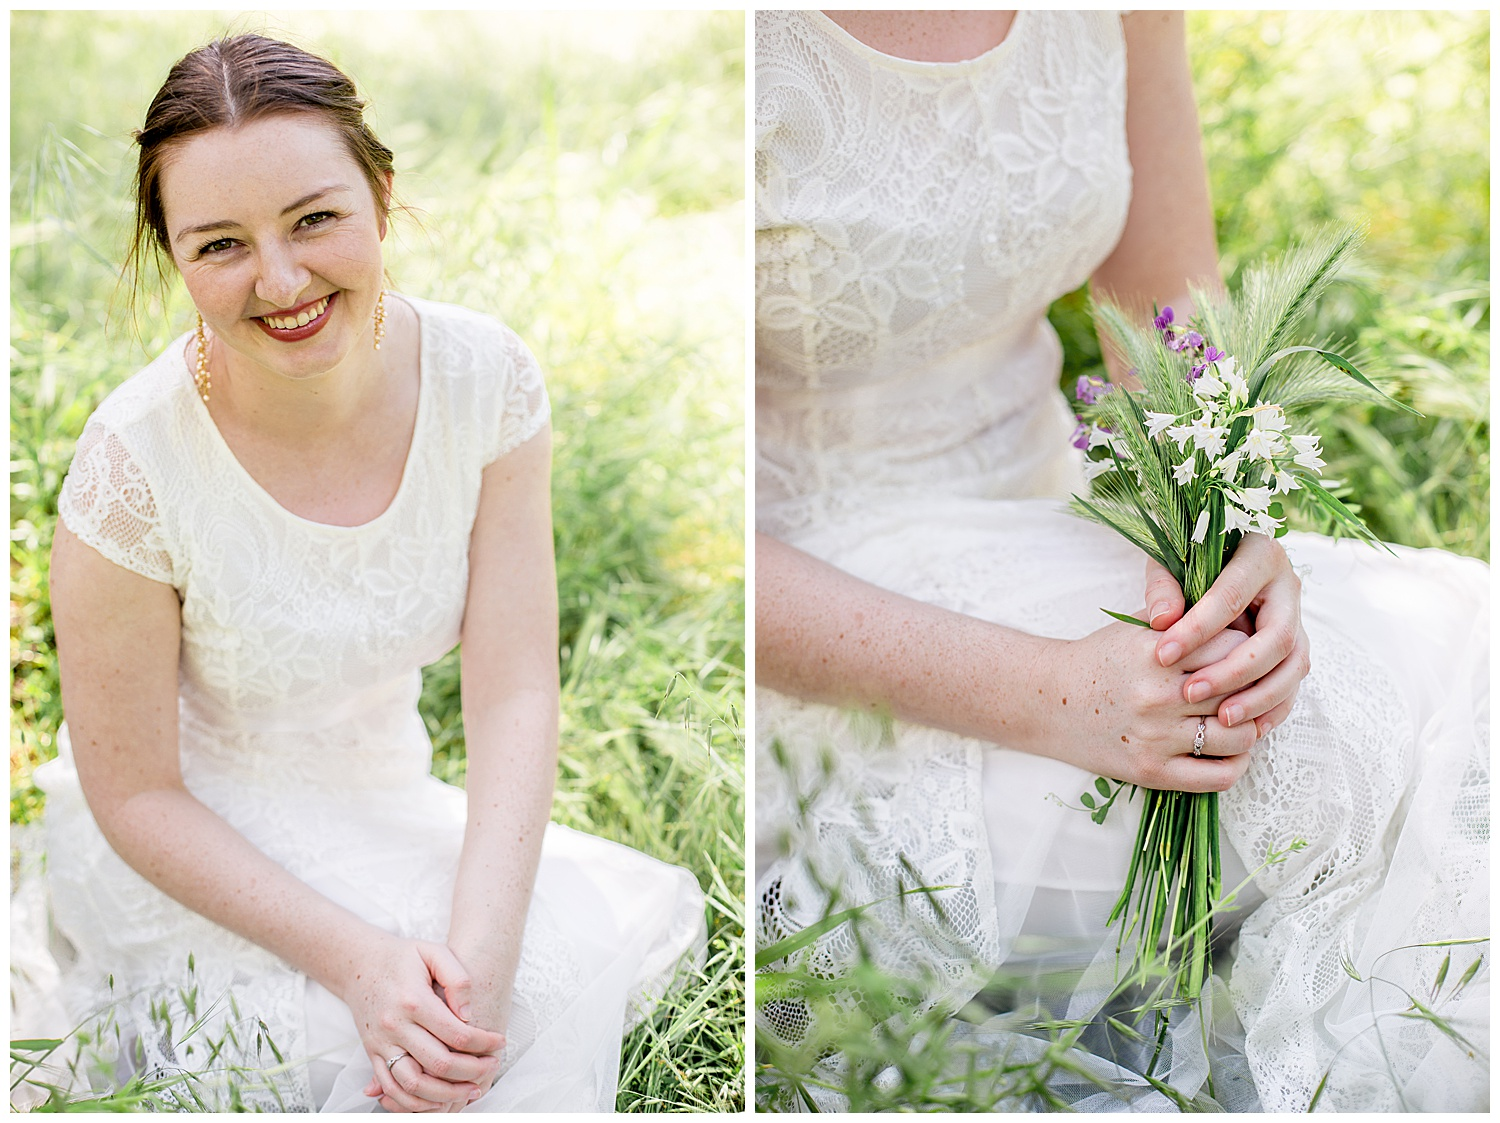 Country_Bridal_Portraits_Lace_Spring_Oregon_Photographer_Cowboy_Boots4.jpg